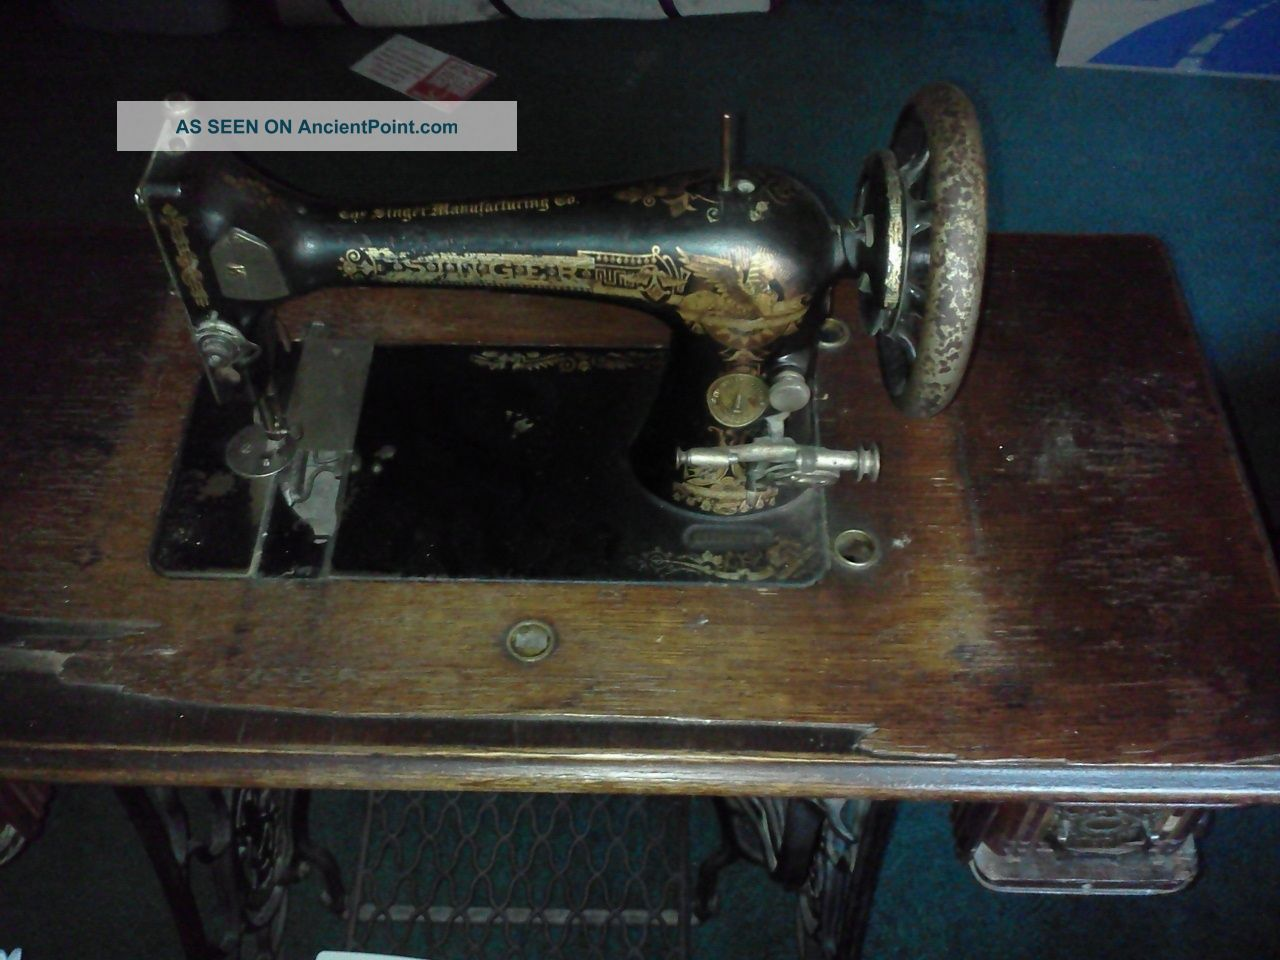 Antique Singer Sewing Machine In Its Wood Casing And Case Cover - Great Find Sewing Machines photo